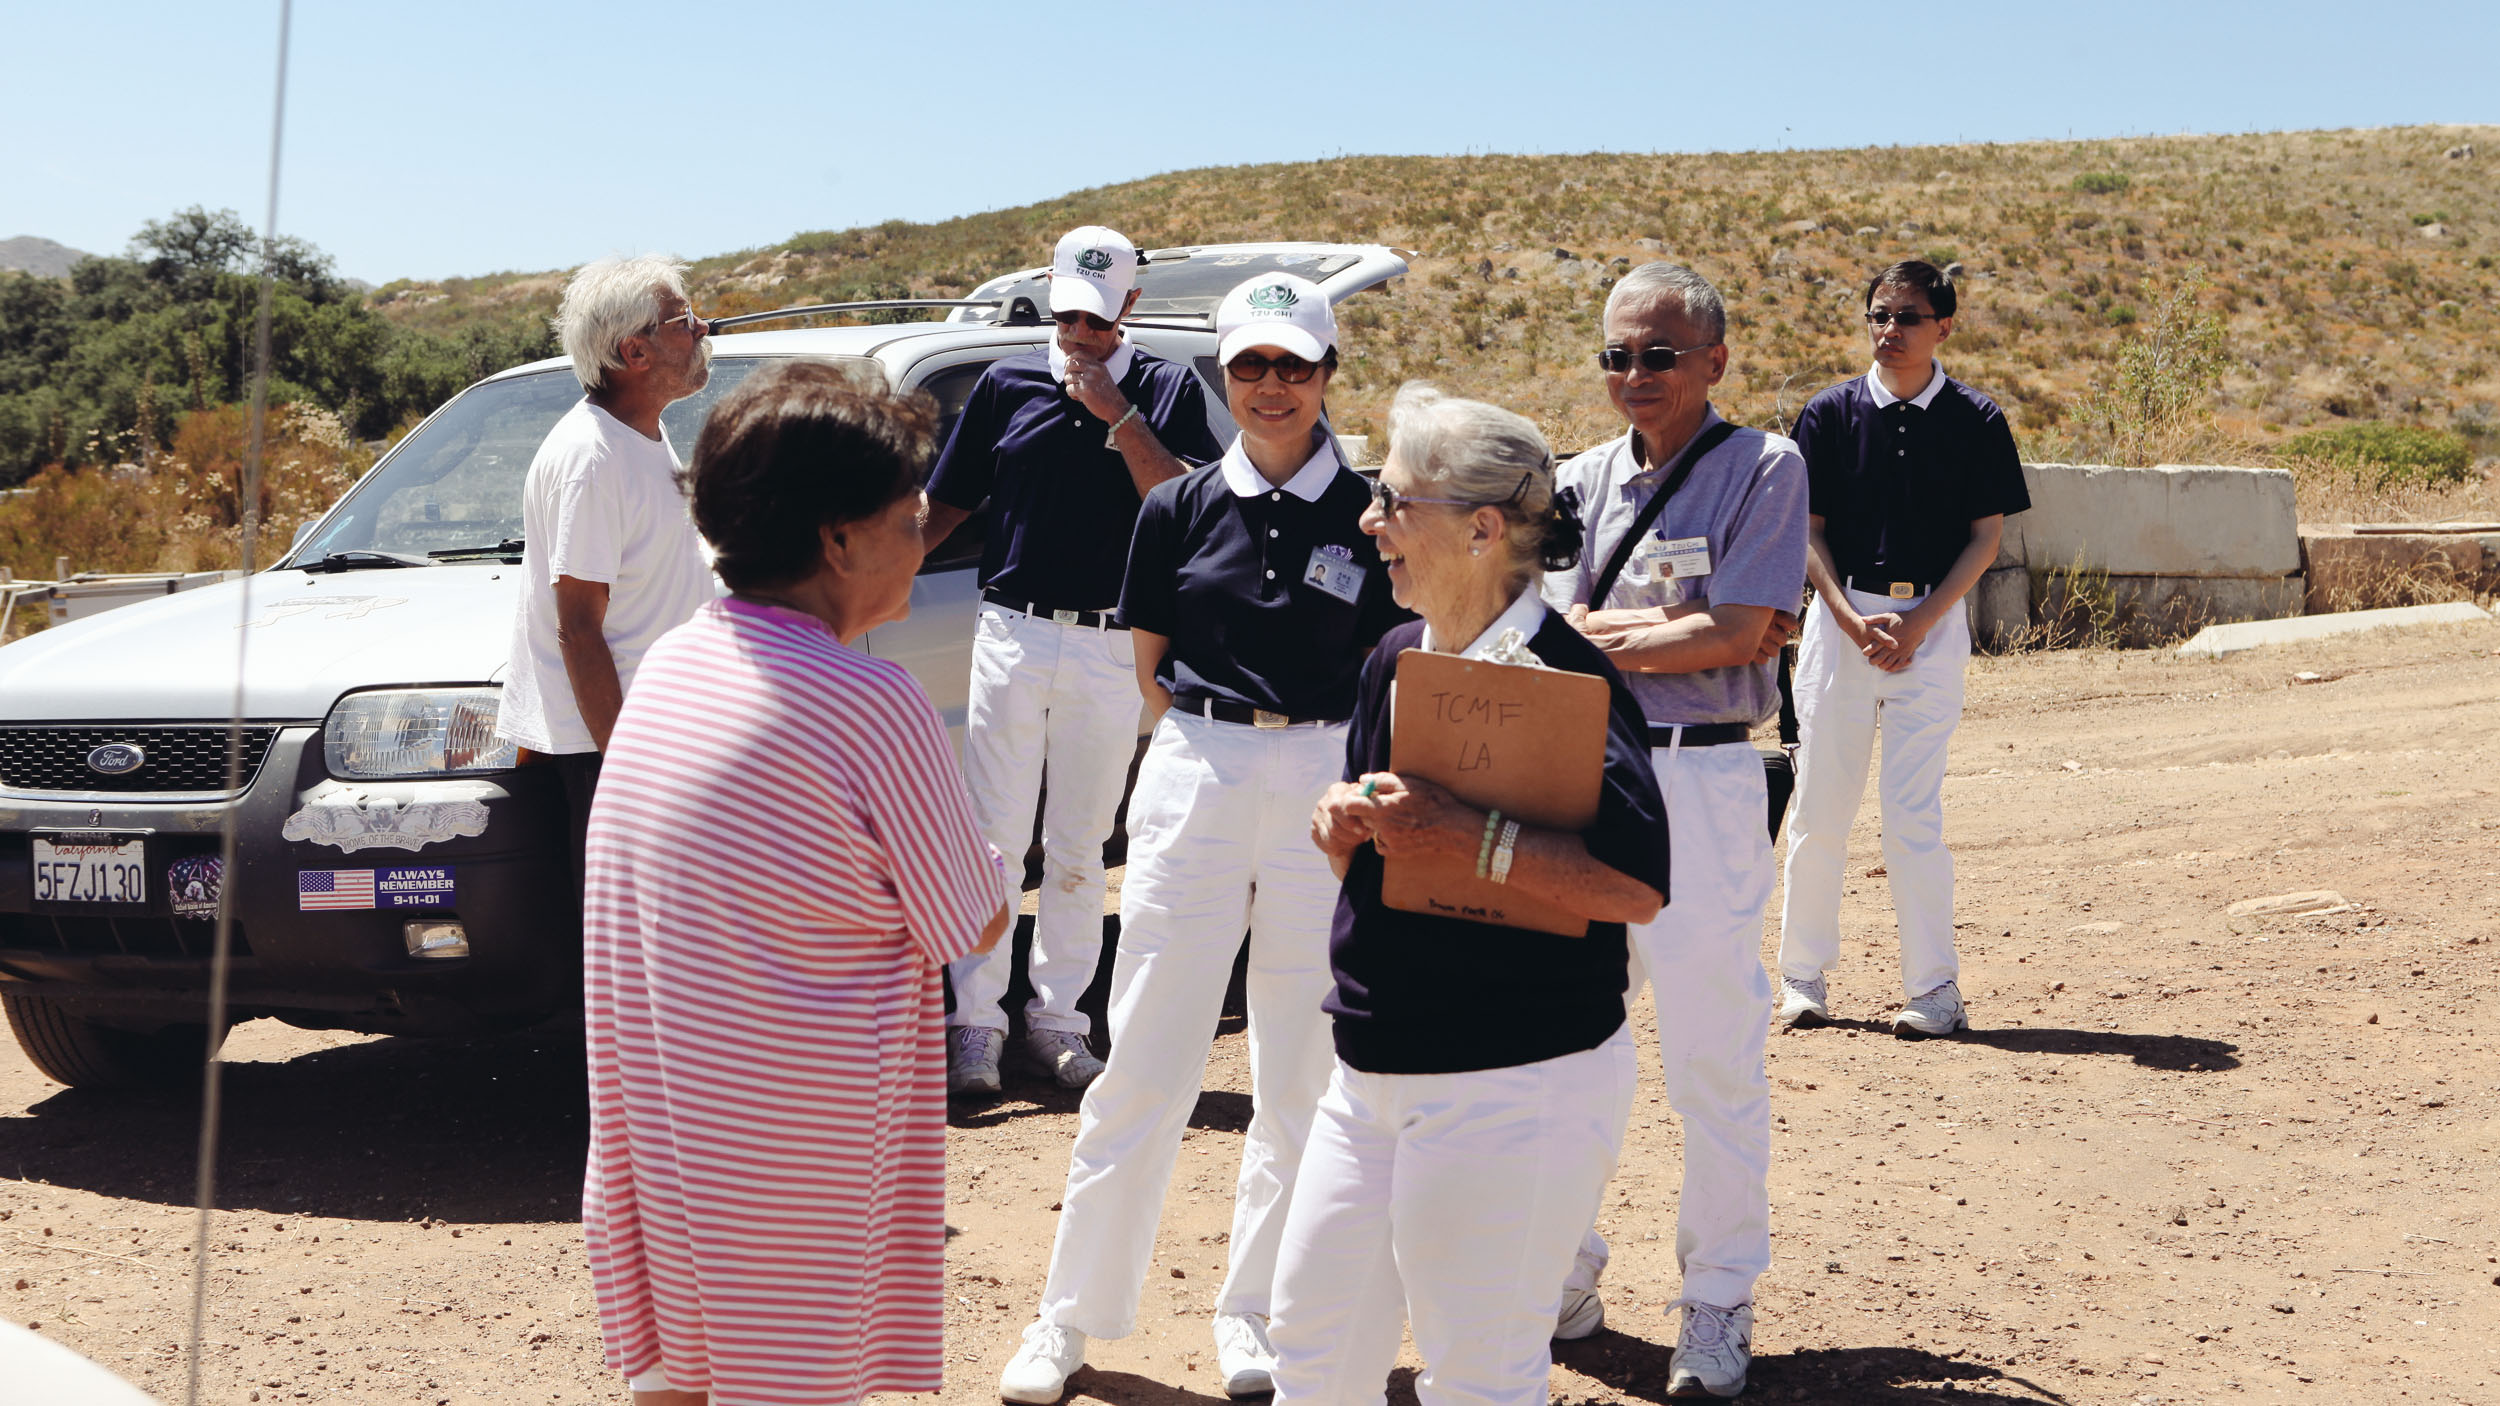 A Tzu Chi team check up on a woman who had been ordered to evacuate during the Border Fire.